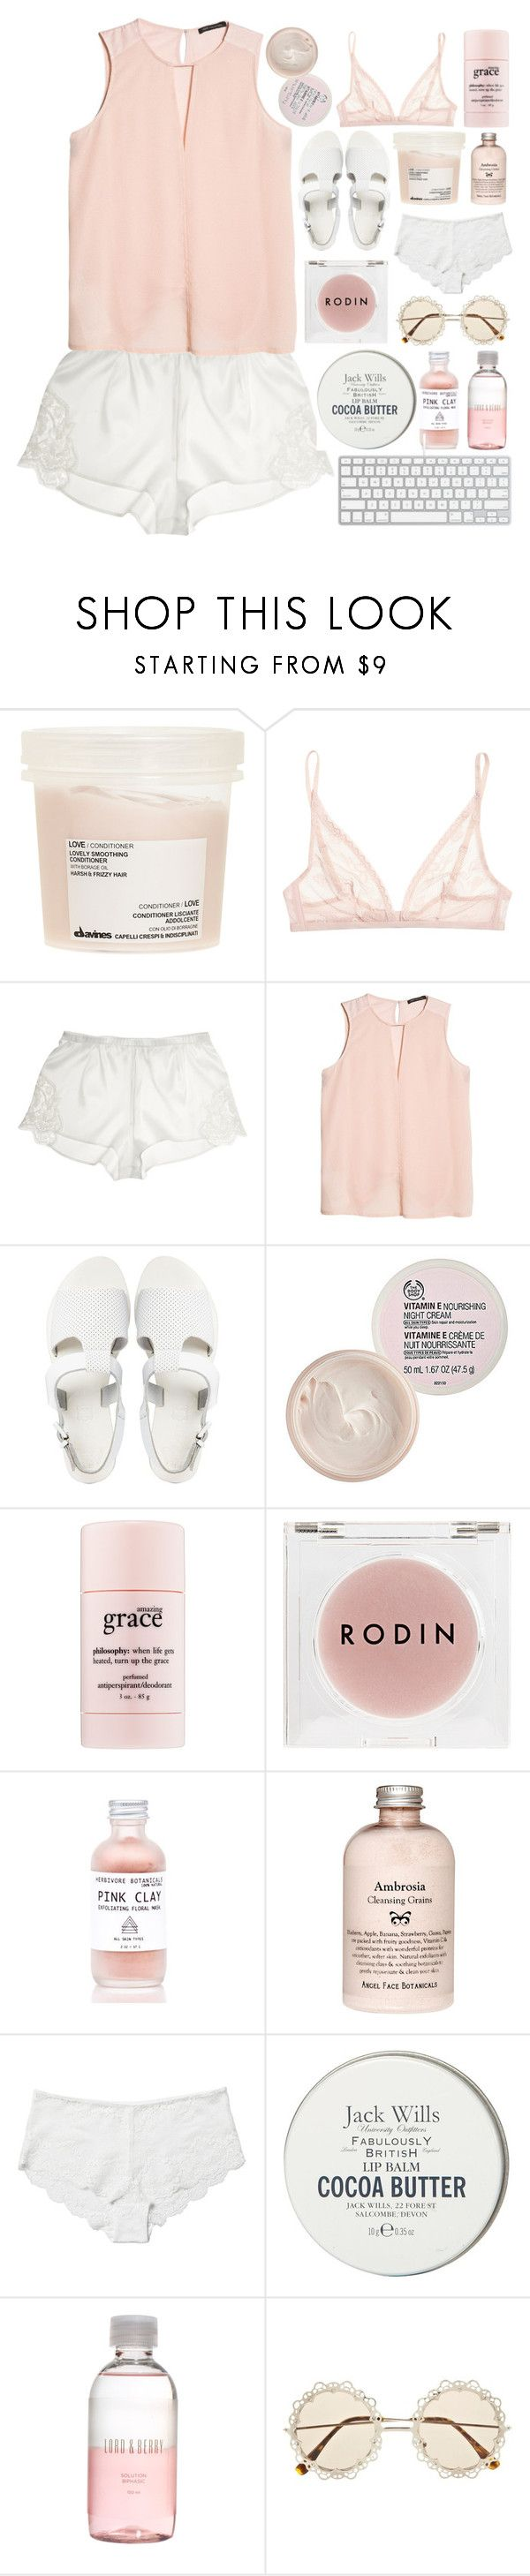 """look at me now i'm falling"" by cottonisth ❤ liked on Polyvore featuring Davines, Calvin Klein Underwear, Dolce&Gabbana, MANGO, Sol Sana, The Body Shop, philosophy, Rodin Olio Lusso, Monki and Jack Wills"